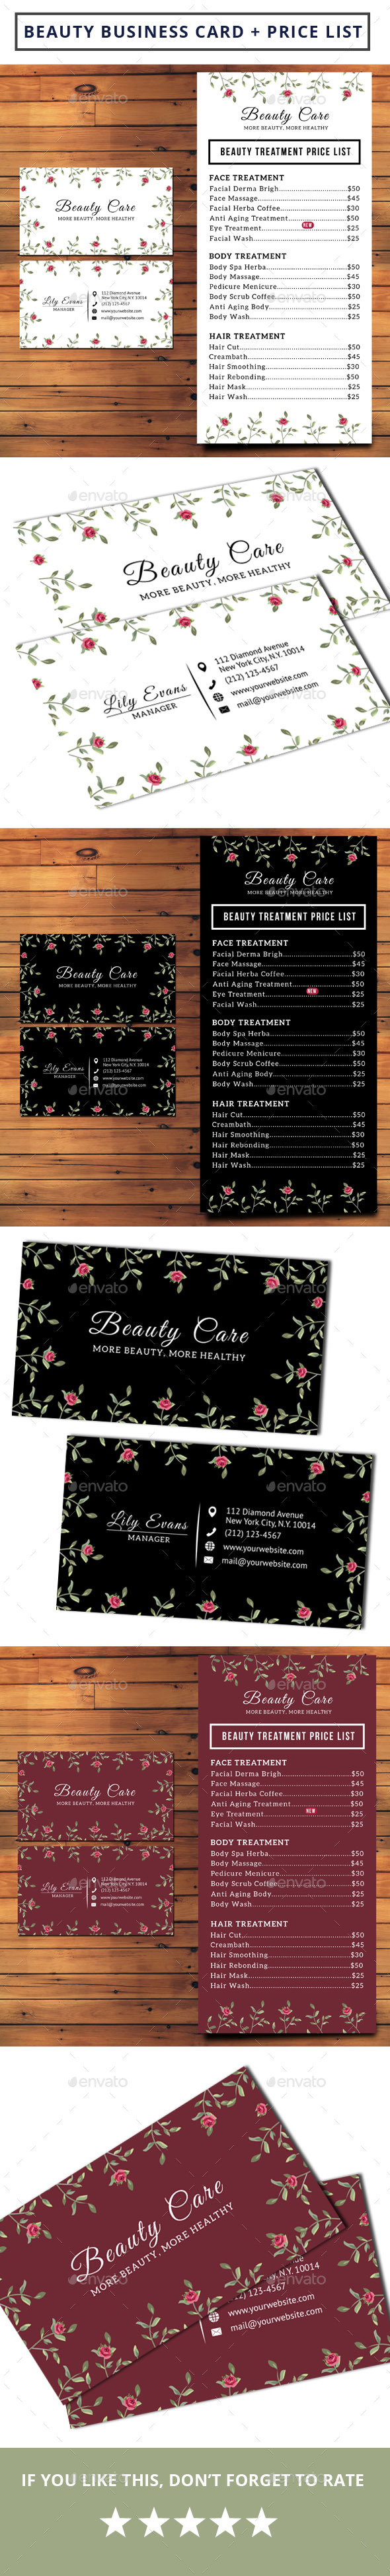 Beauty business card pricelist by iamwulano graphicriver beauty business card pricelist industry specific business cards reheart Choice Image